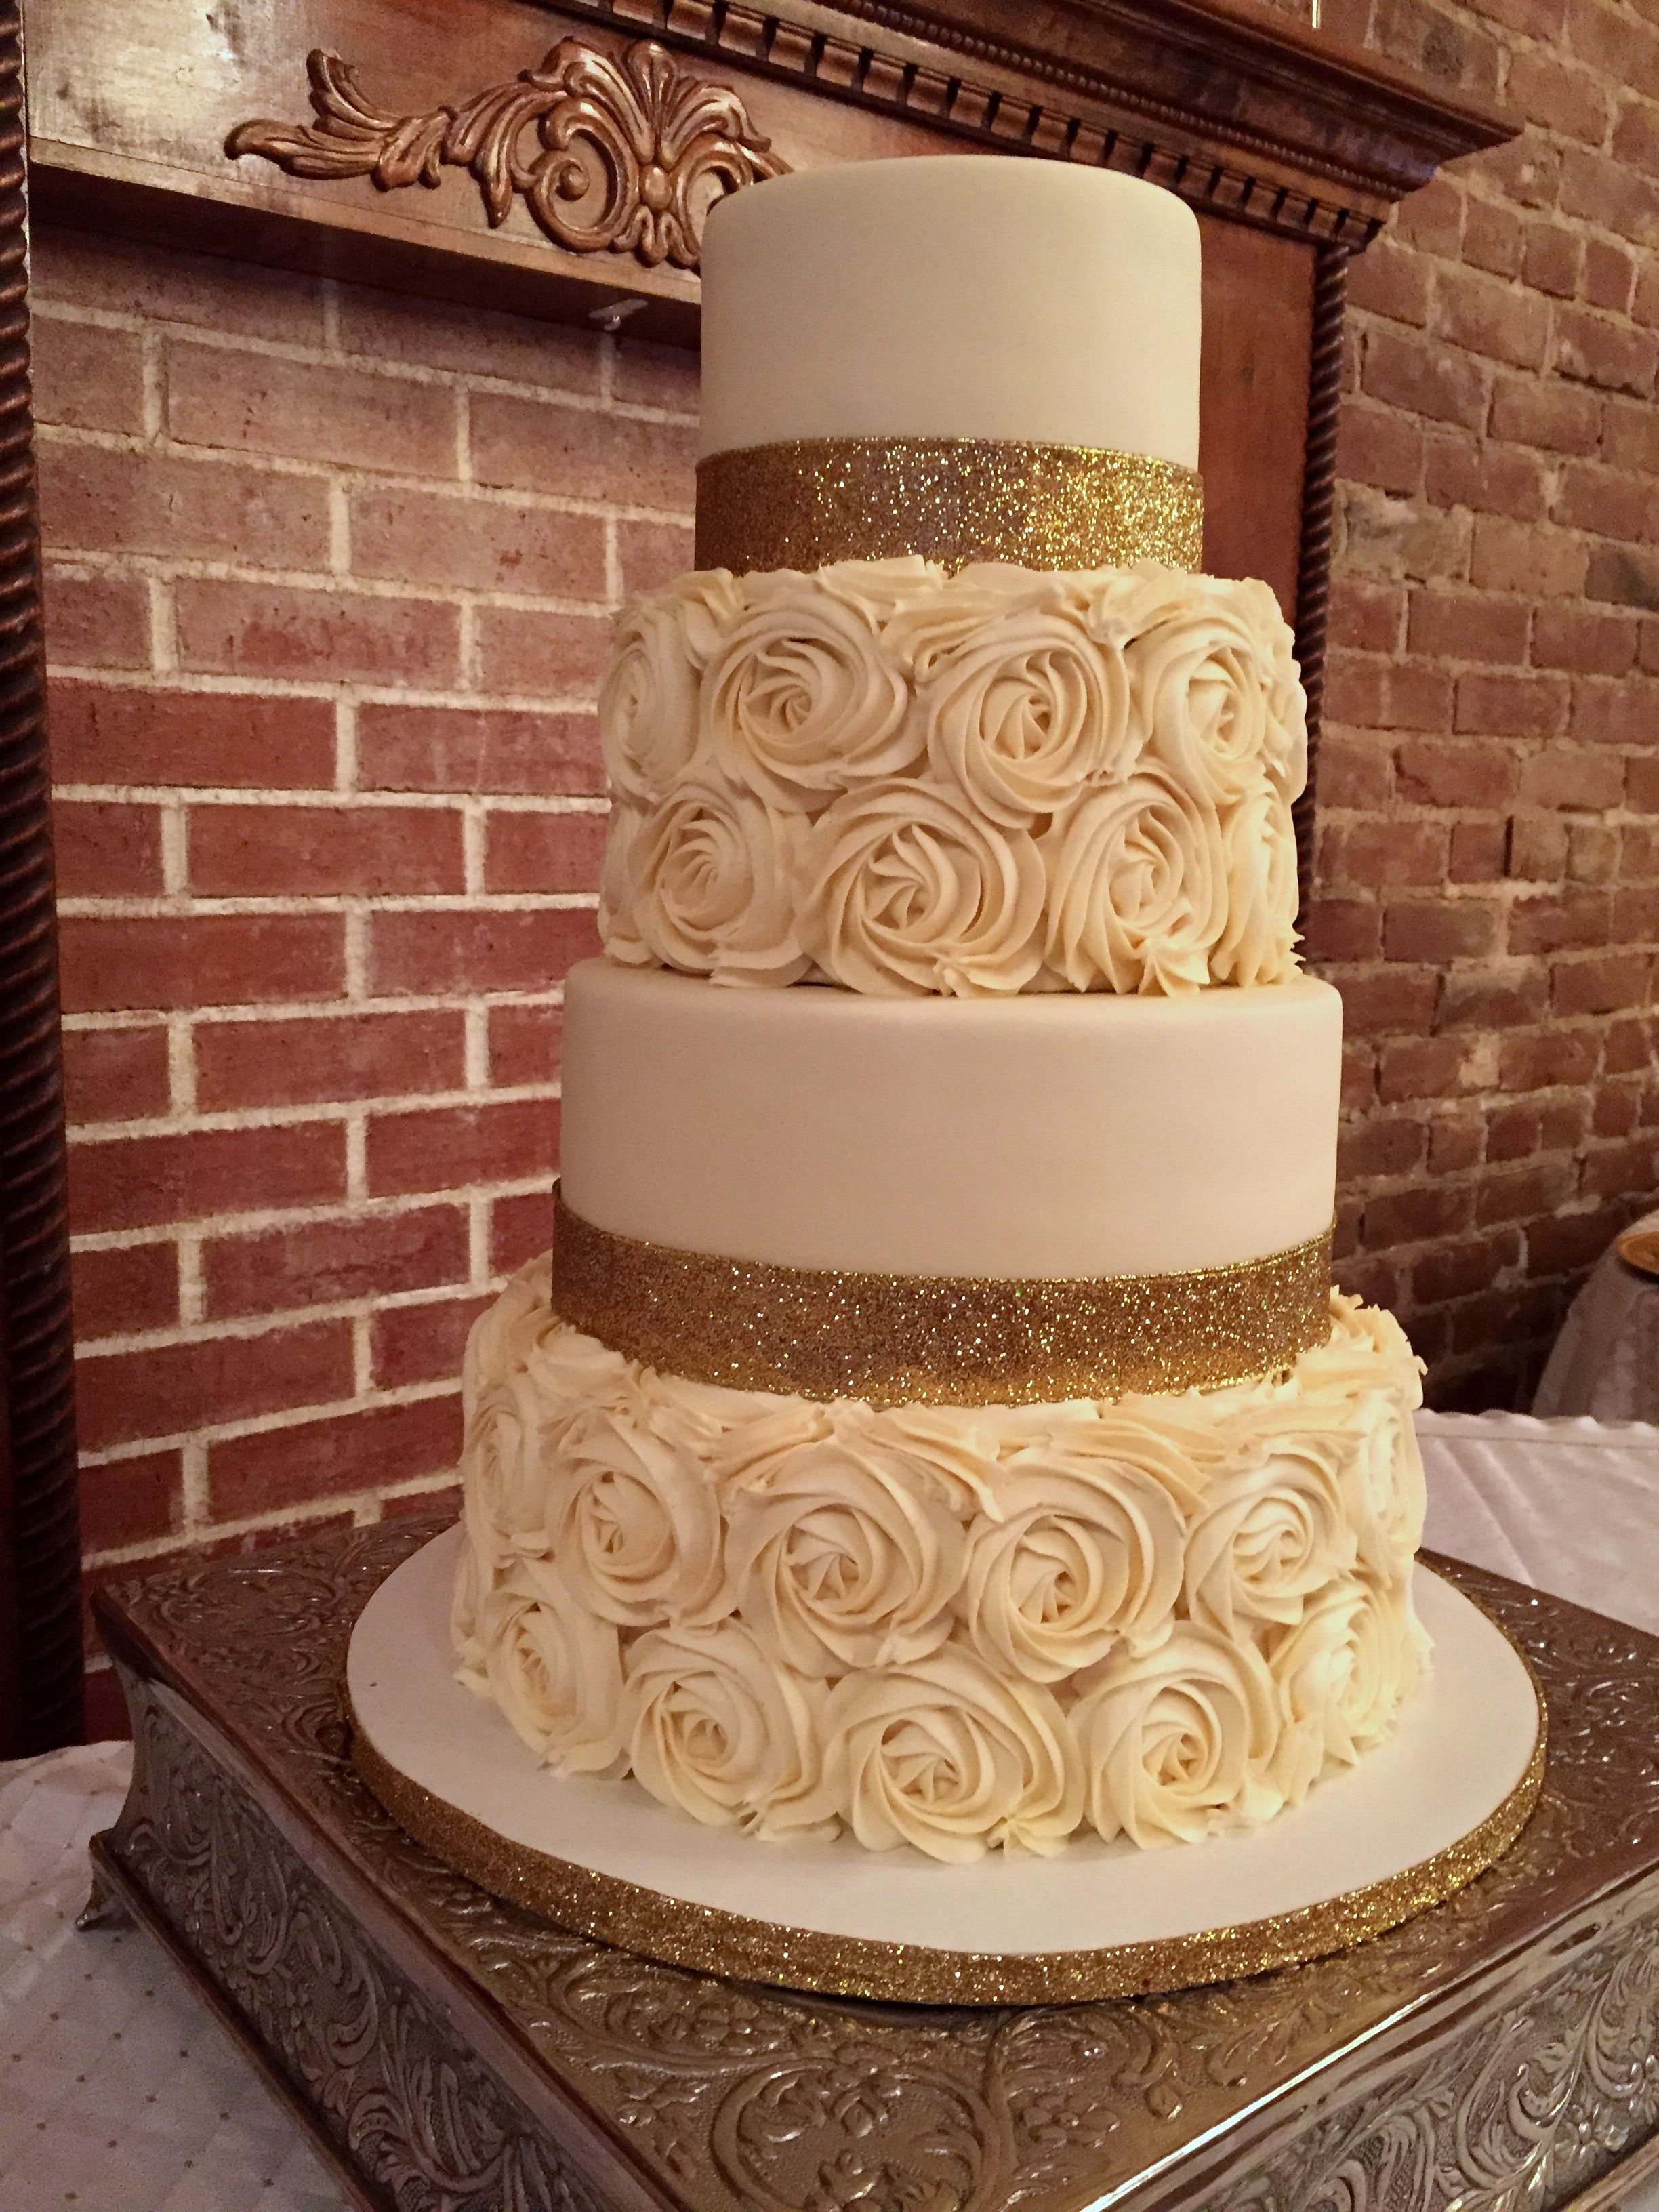 Rosette Wedding Cake Made With Cake Couture Fondant And